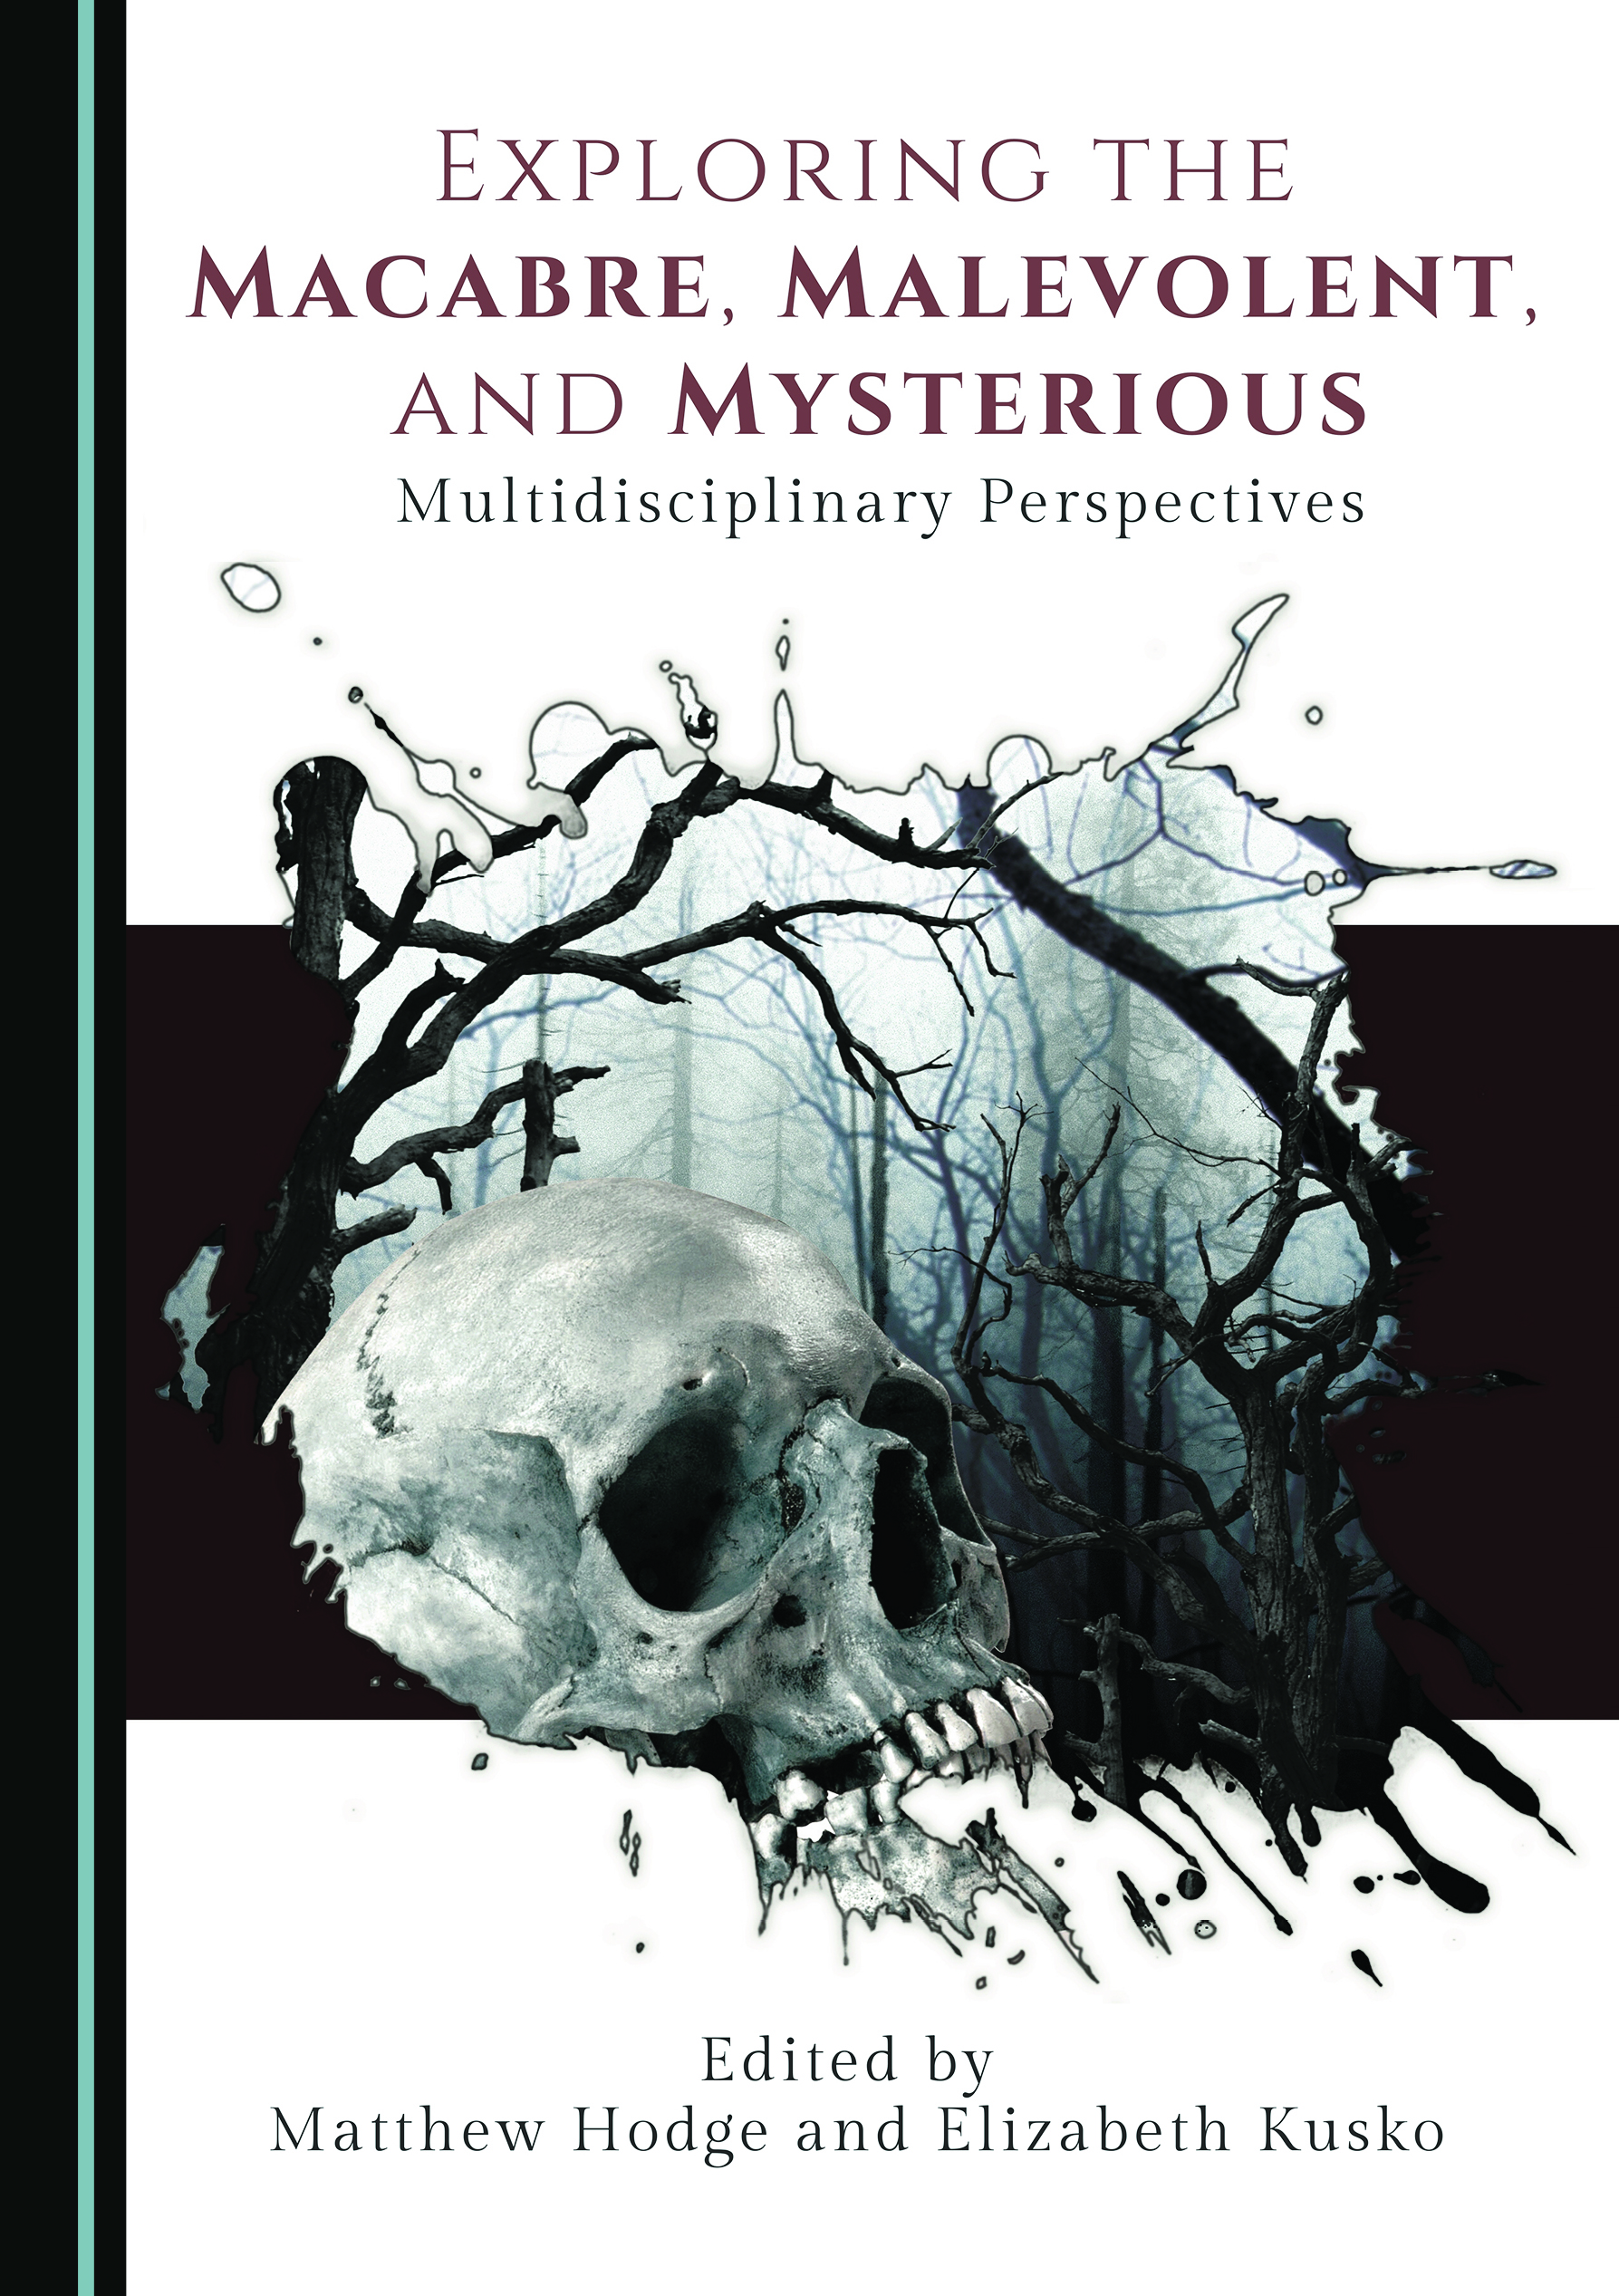 Exploring the Macabre, Malevolent, and Mysterious: Multidisciplinary Perspectives